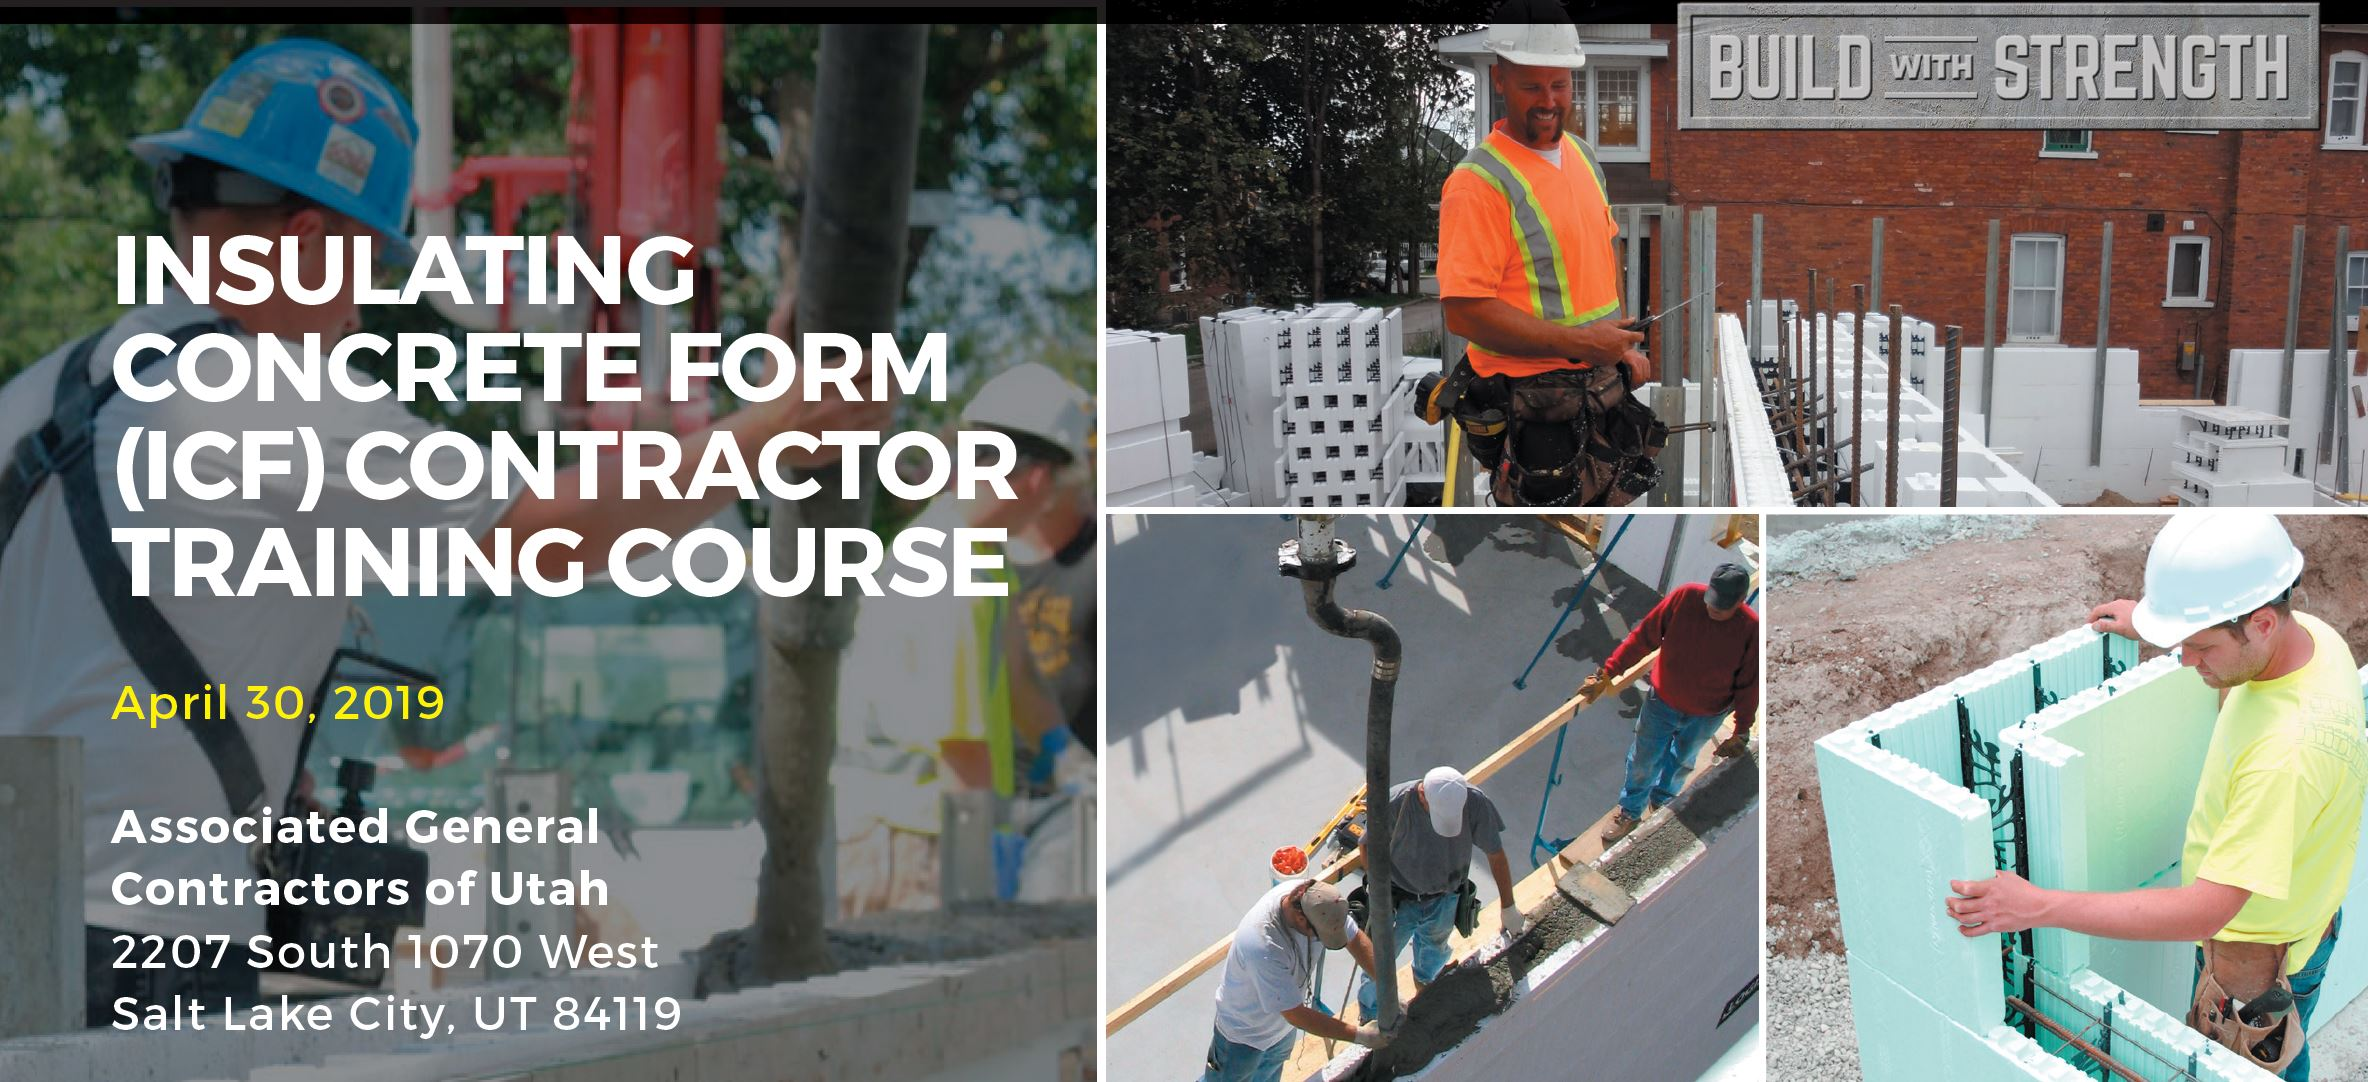 ICF Contractor Training Course (April 30 in Utah) - ICFMA